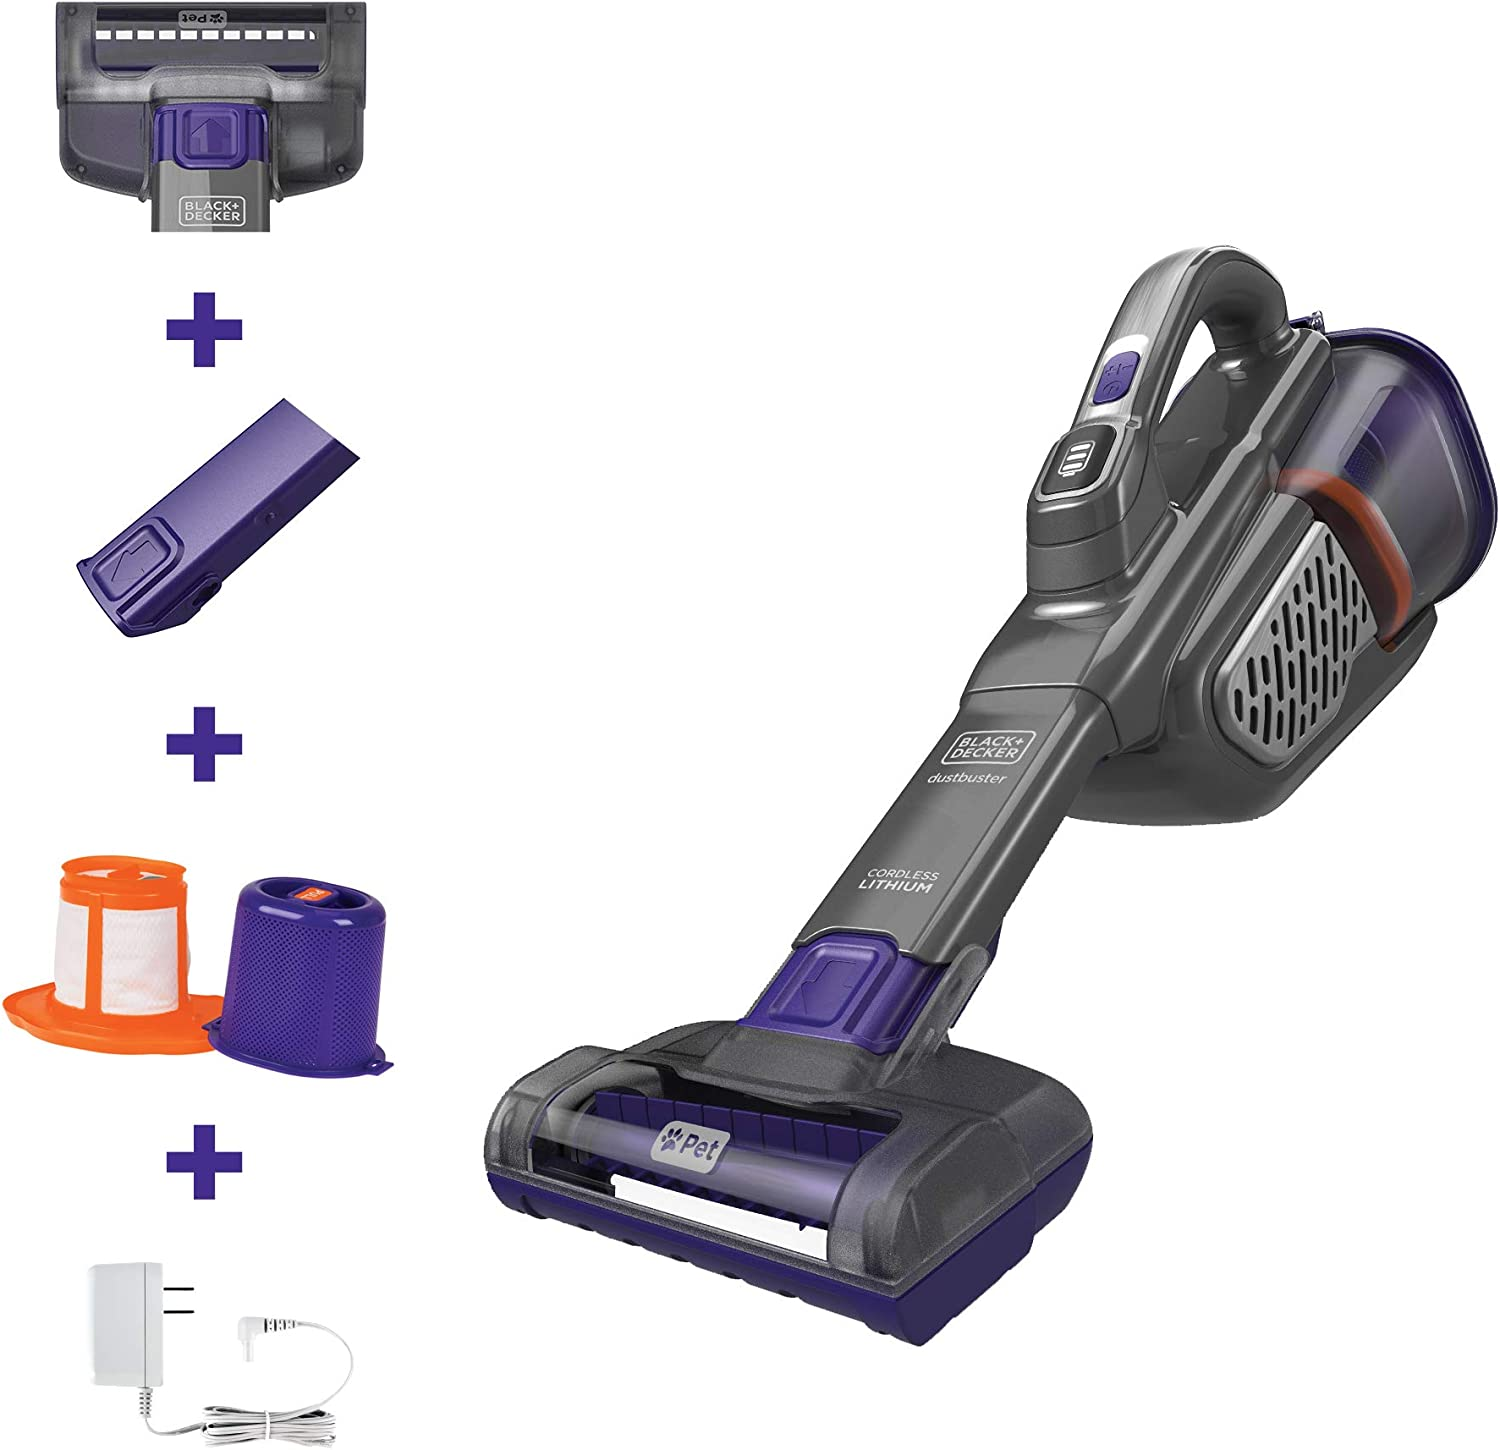 Black+Decker HHVK415B01 aspiradora de mano Dustbuster: Amazon.es ...